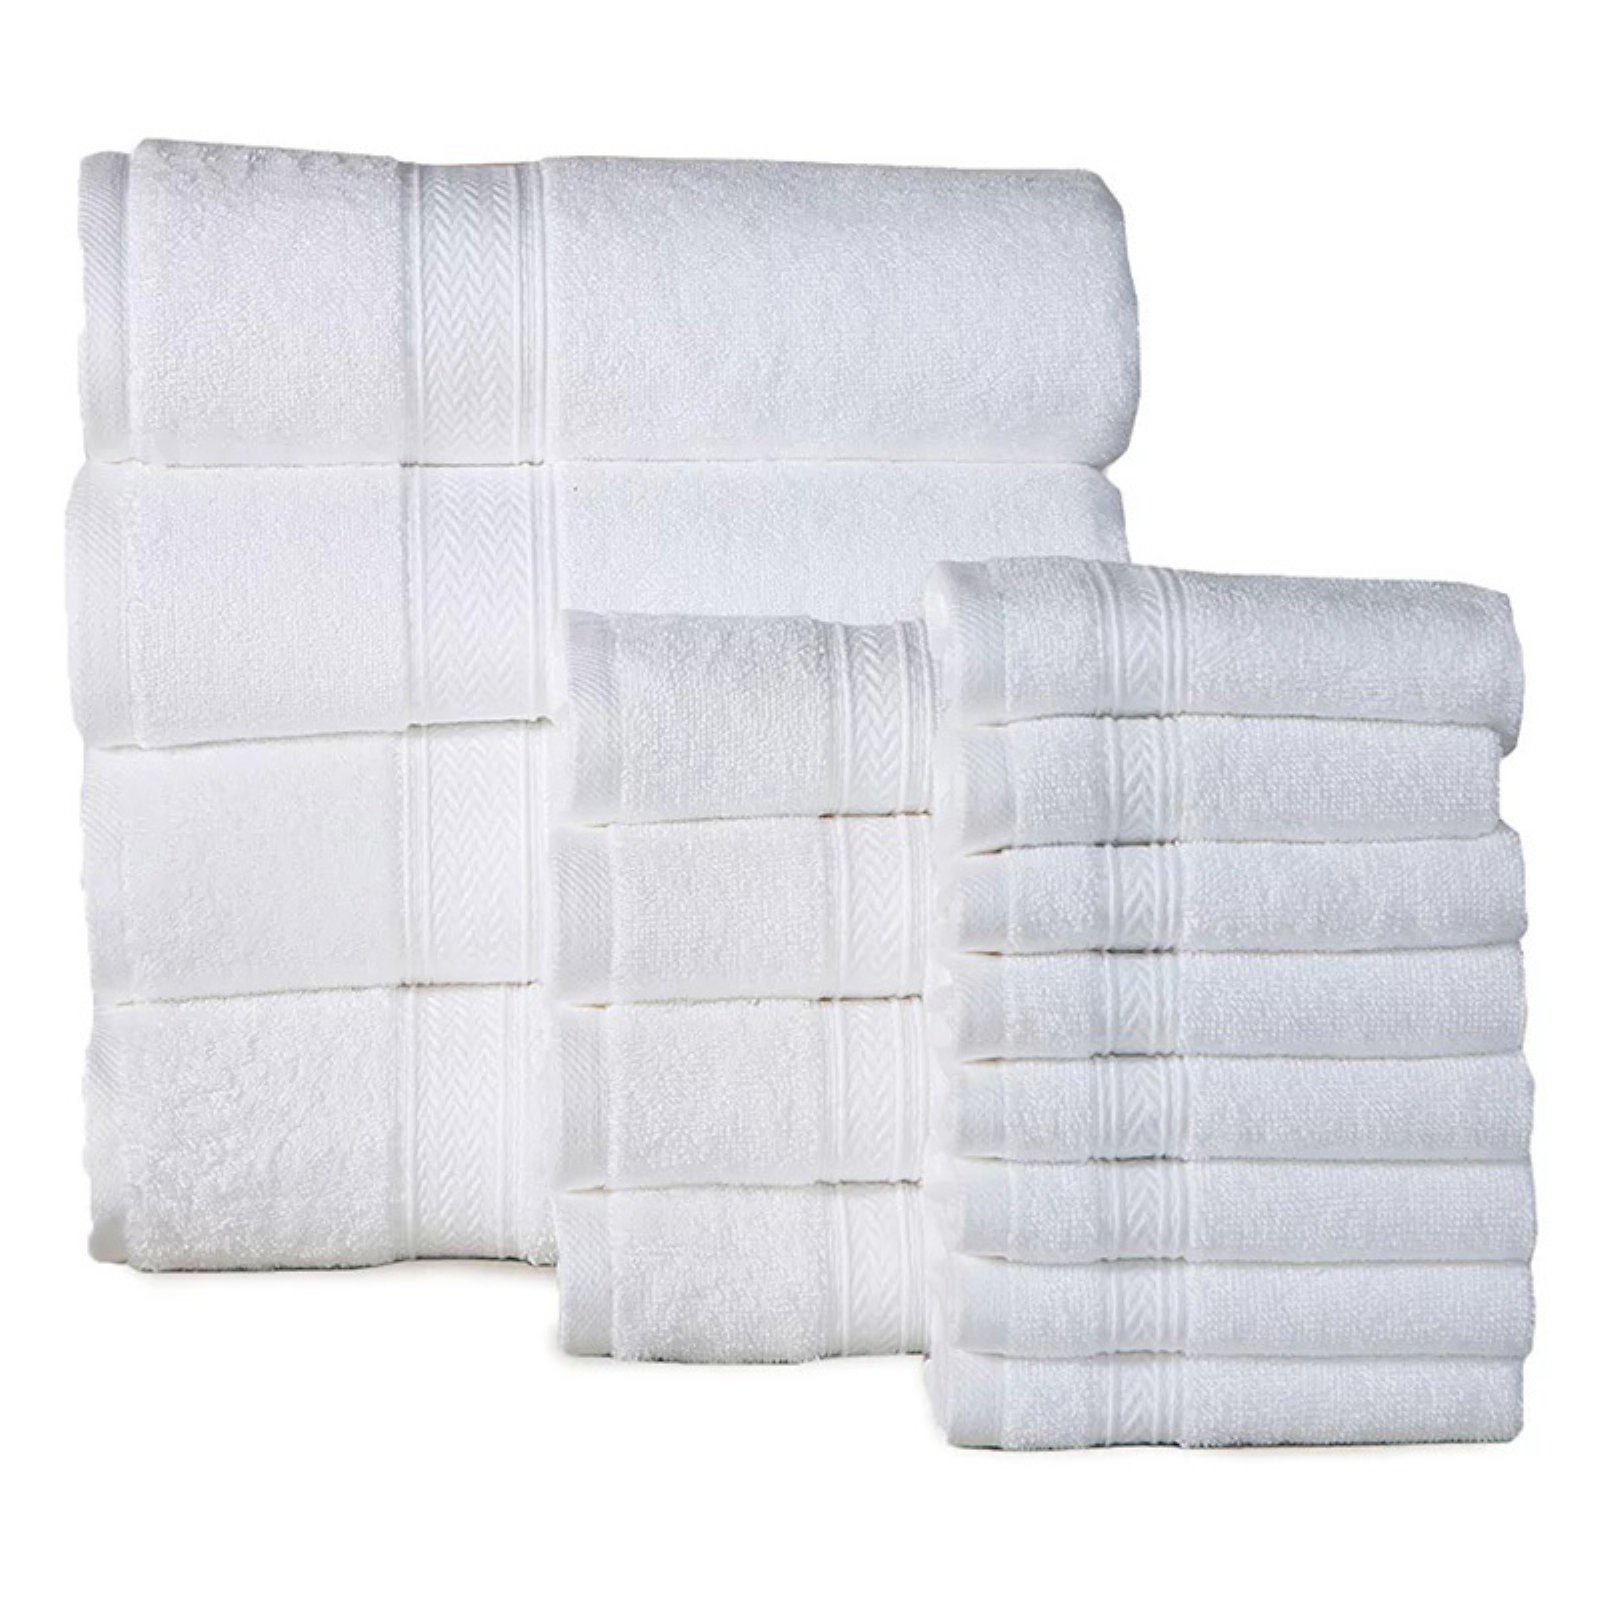 Casa platino 16 Piece Soft Cotton Towel Set by Overstock